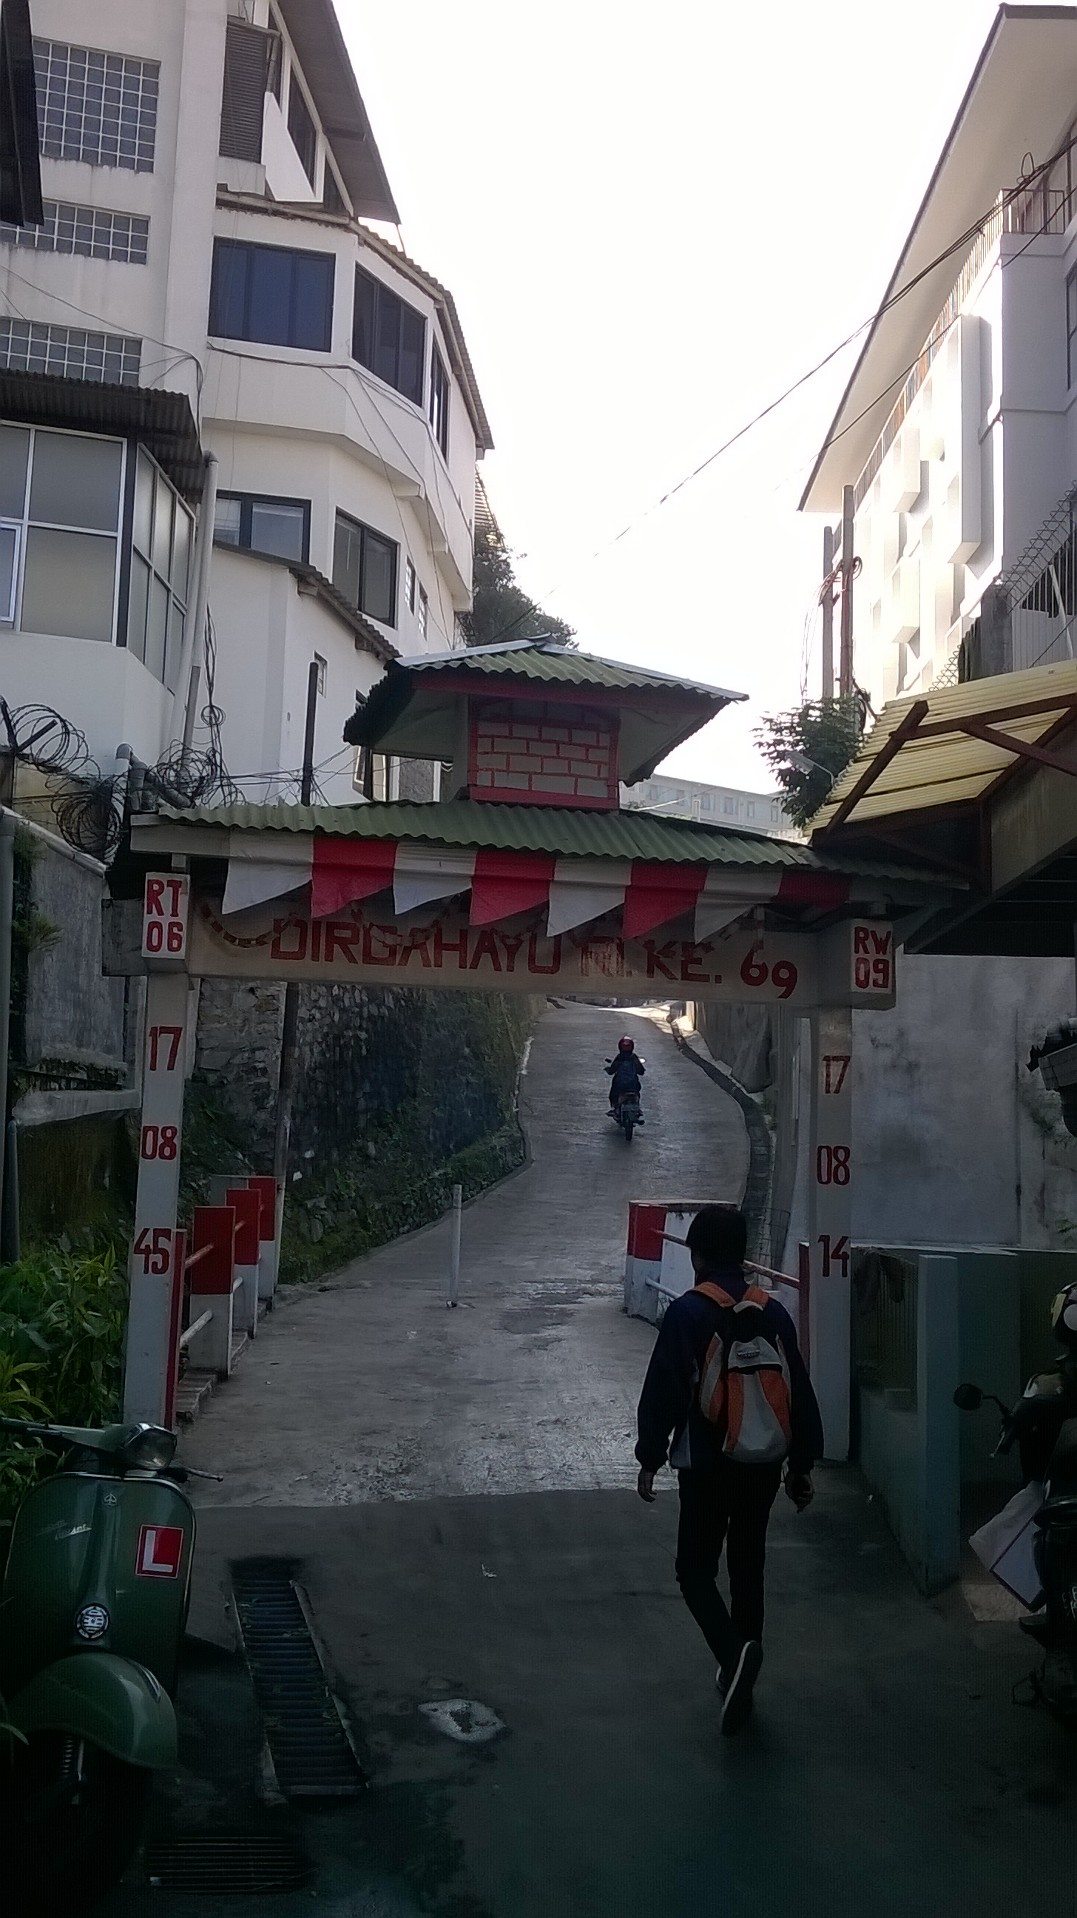 A small alley with simple gate